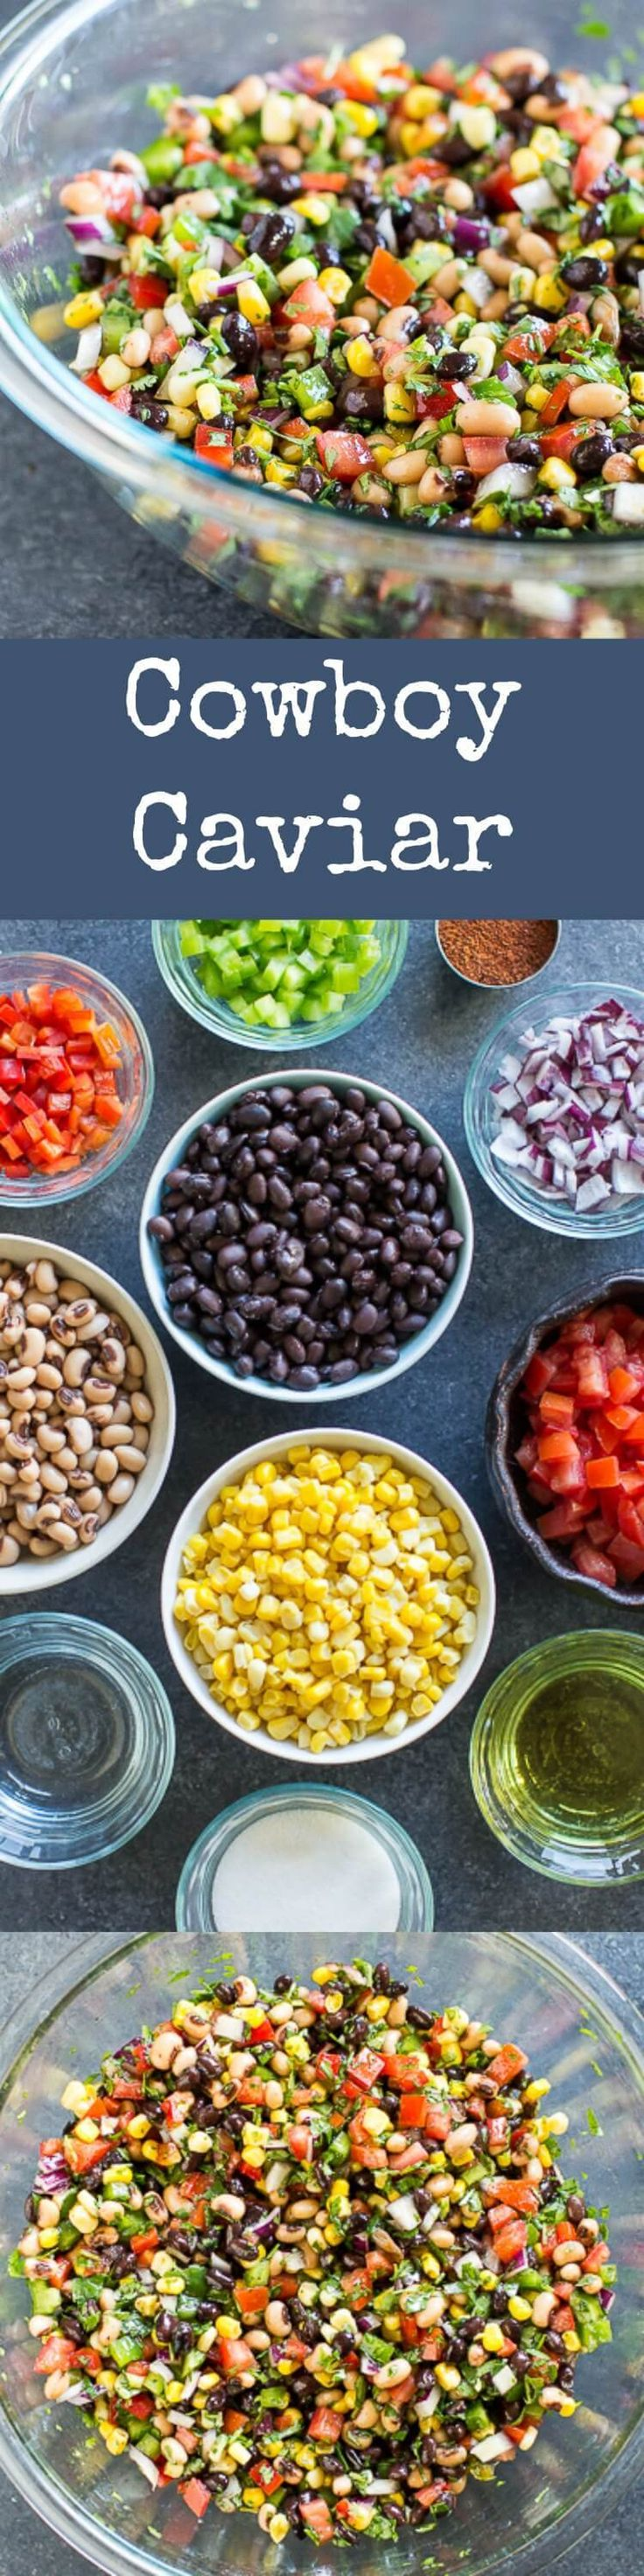 Cowboy Caviar is packed with colorful, fresh ingredients that also happen to be healthy. Makes a great salsa, dip, or salad at your next party or barbecue! Naturally vegan and gluten free. Pinned over 111,000 times!